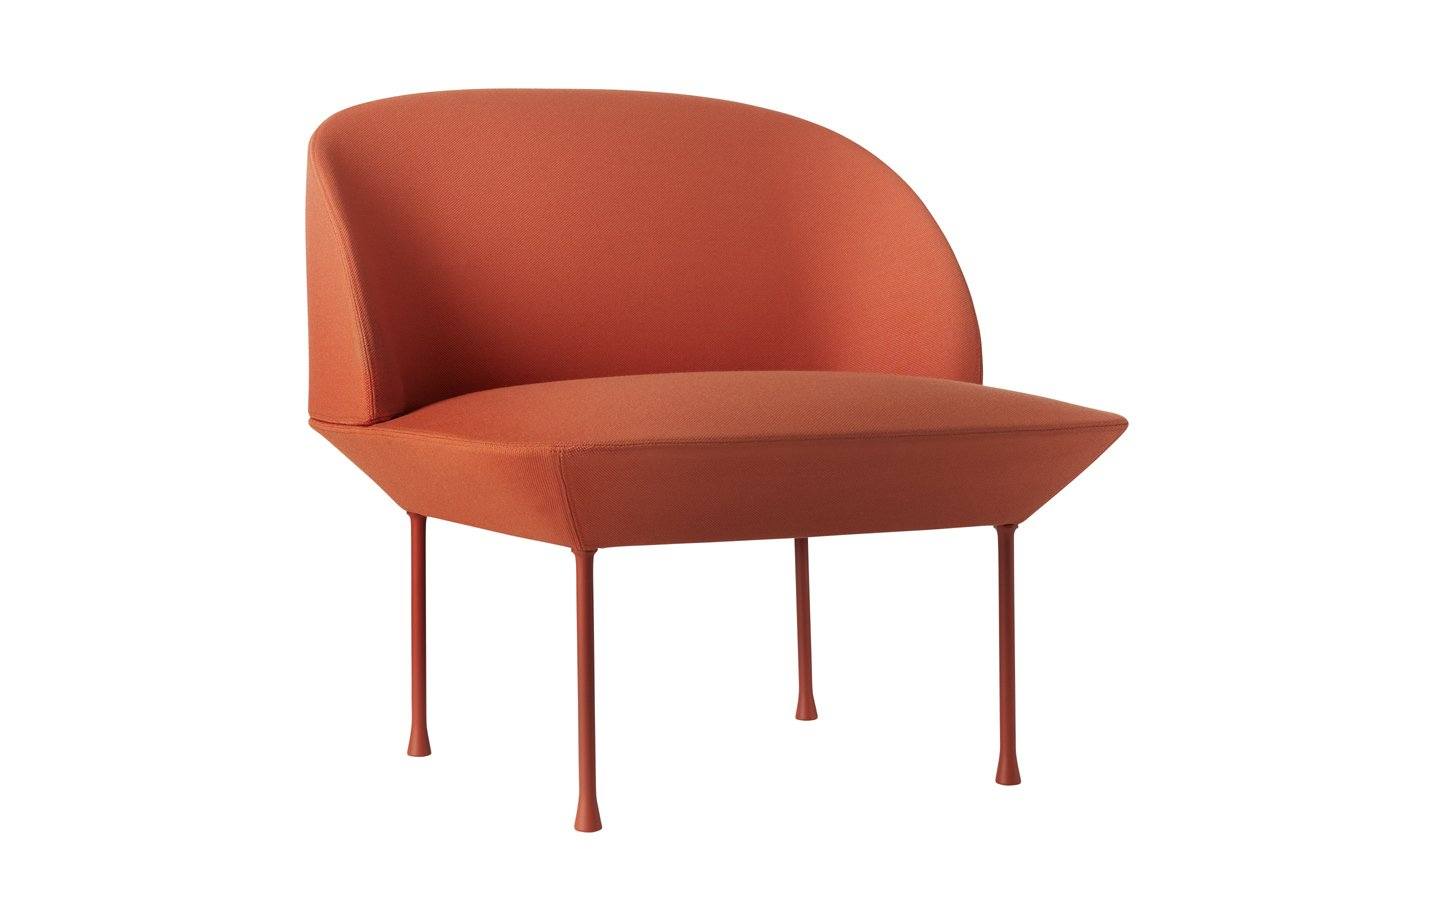 Oslo chair light tangerine – orange